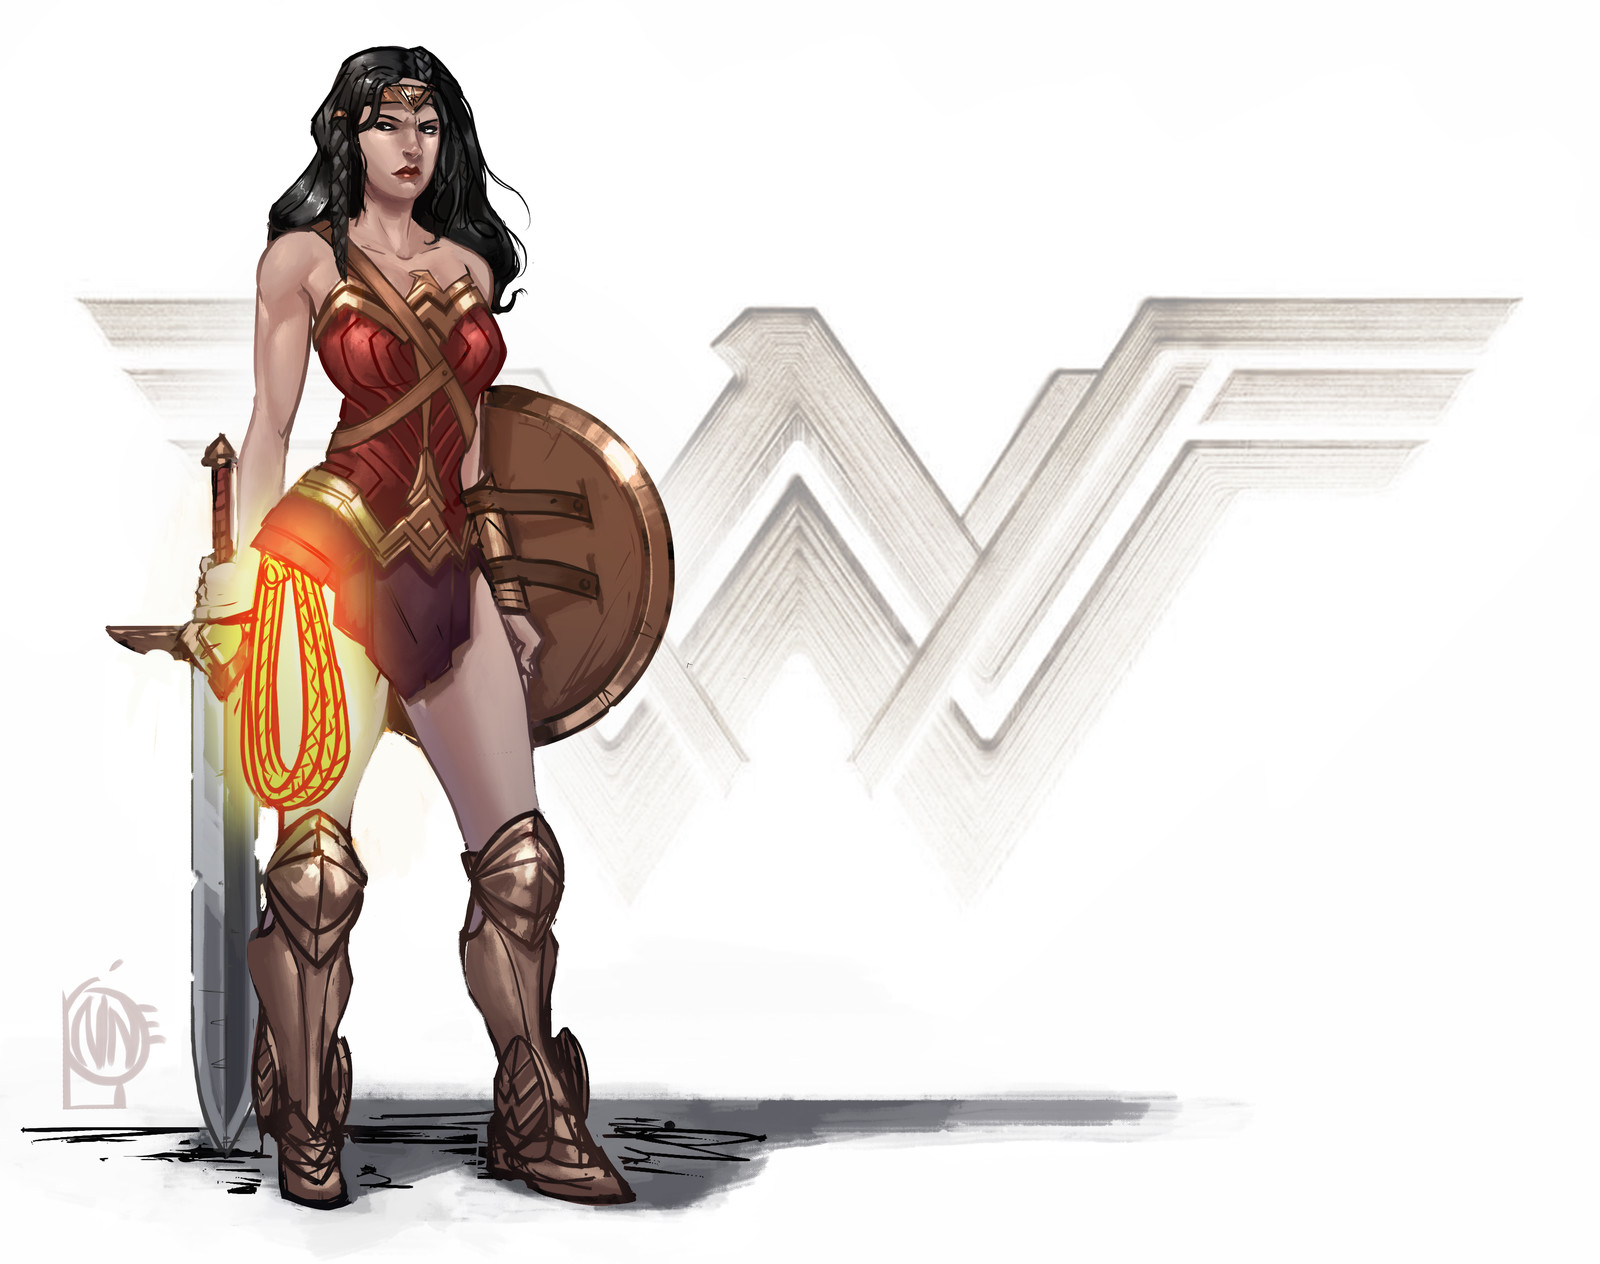 wonder woman fan piece